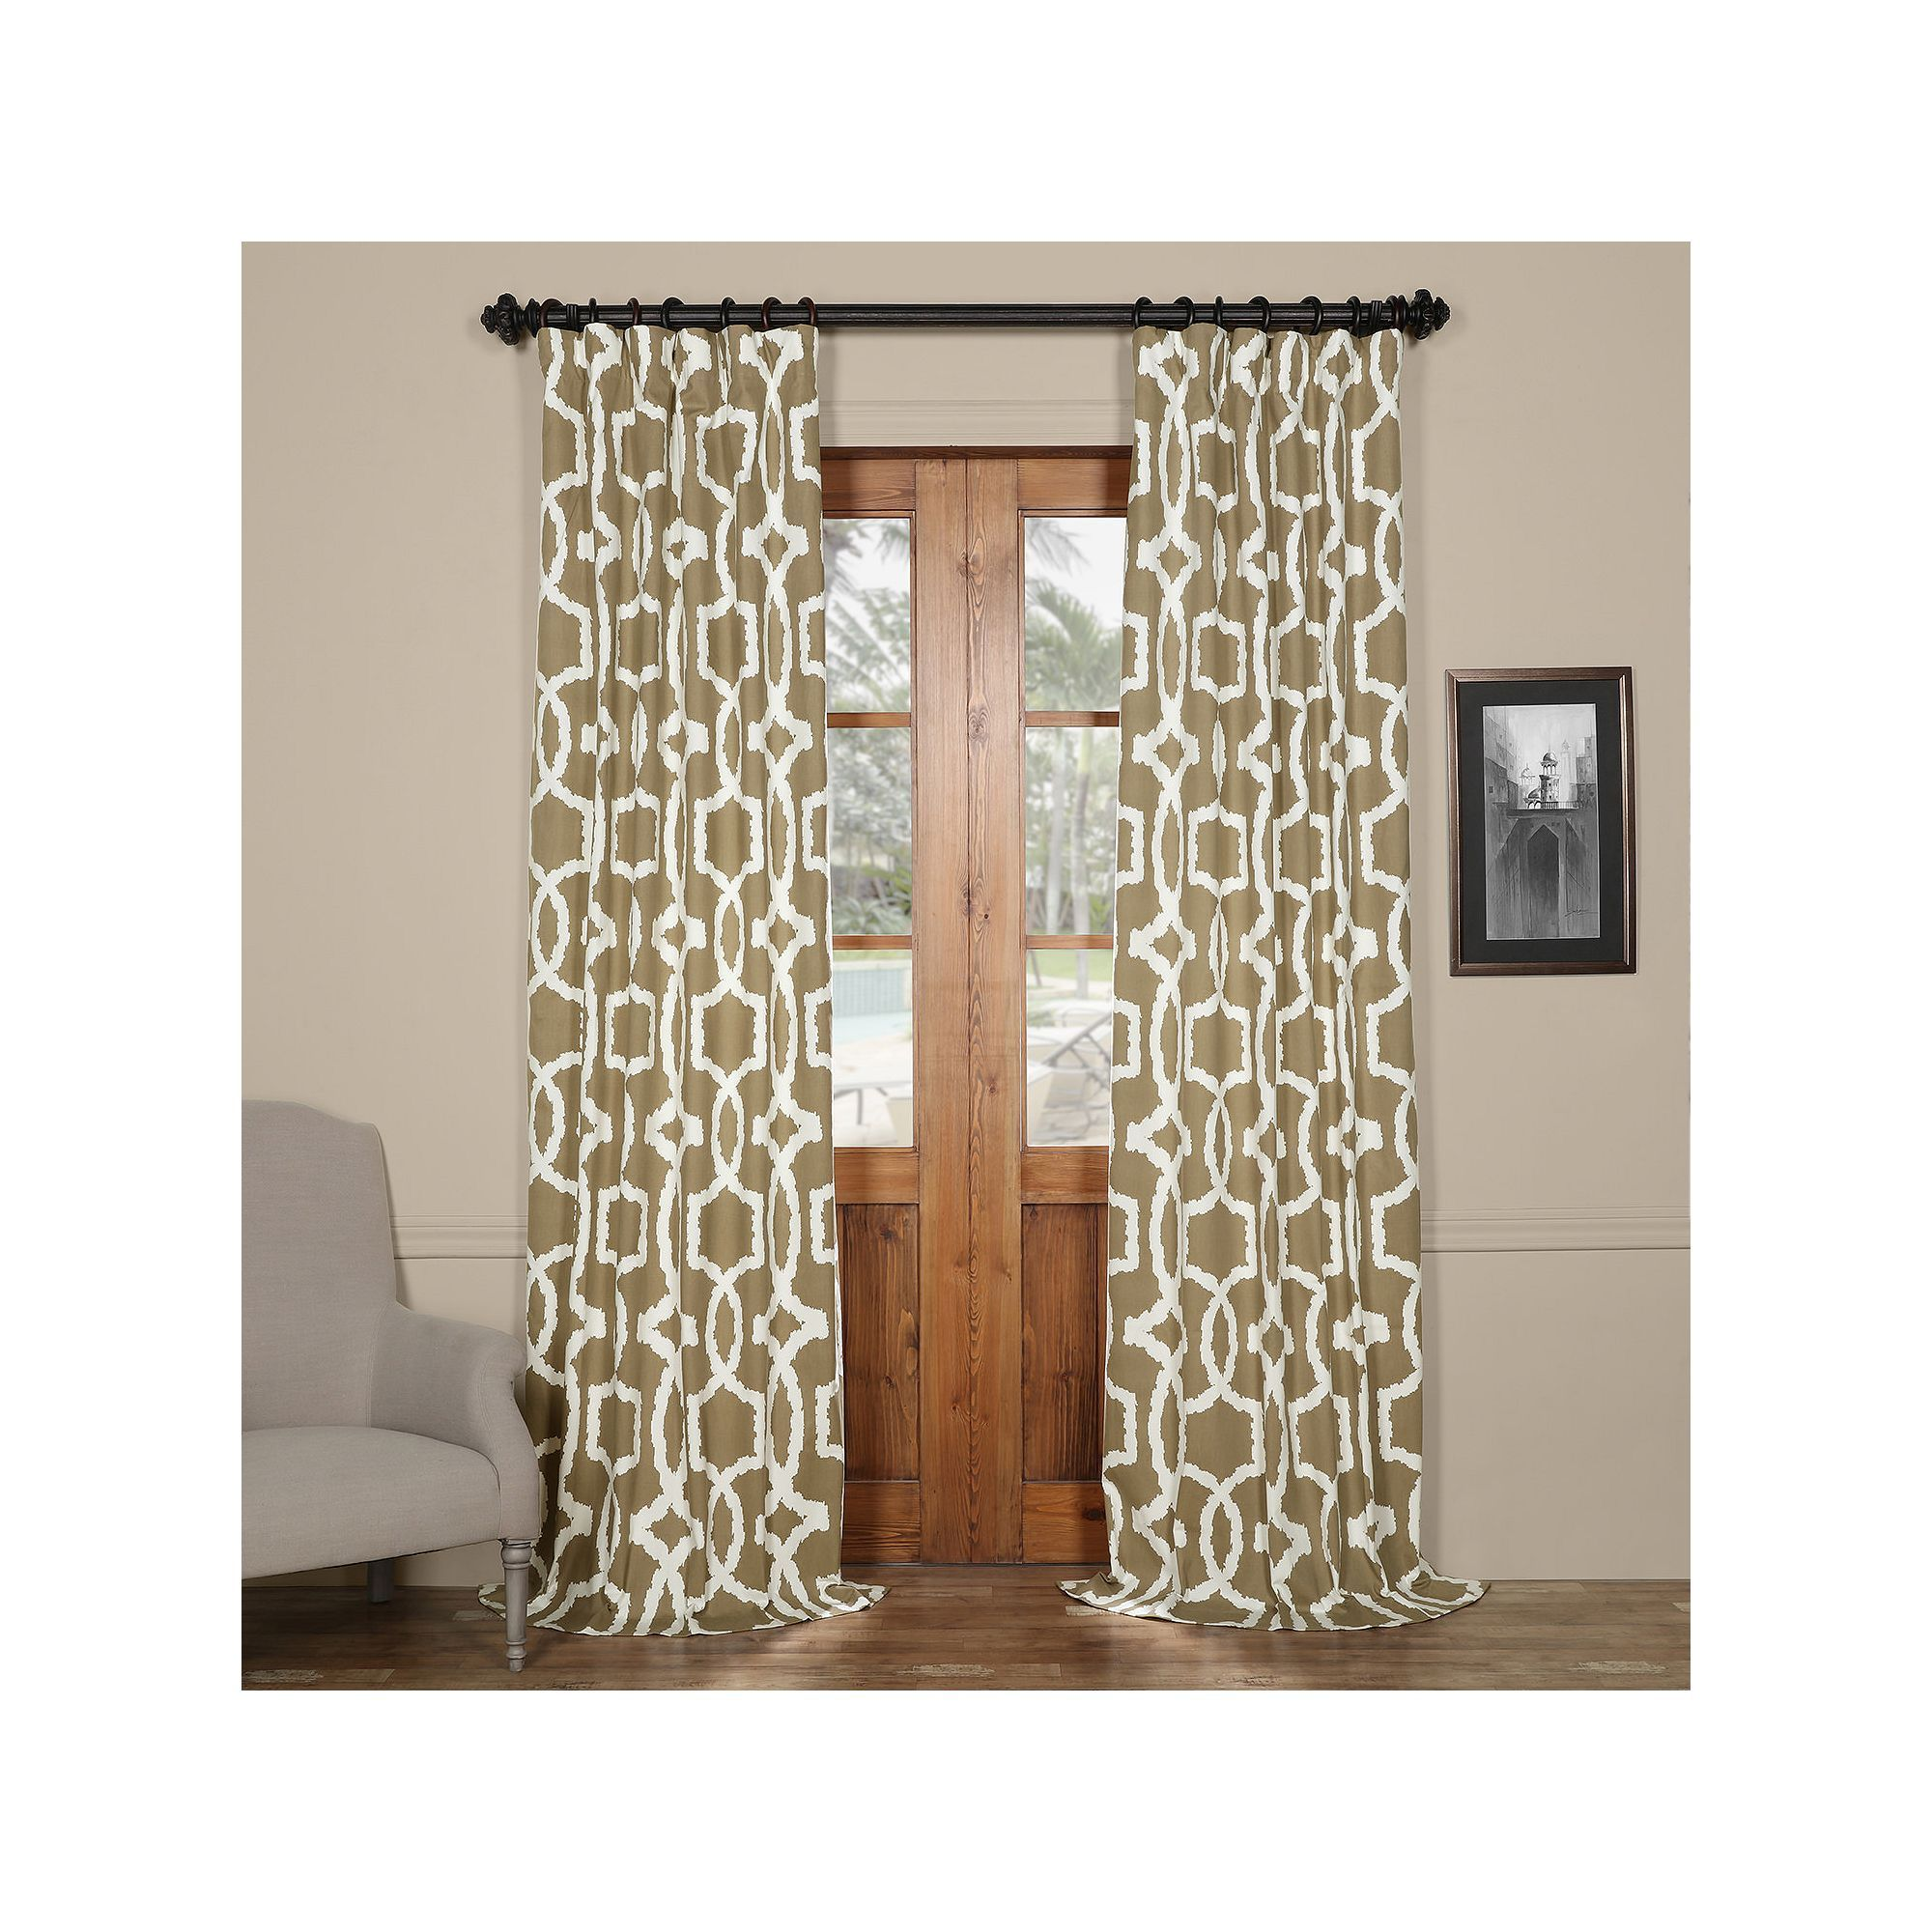 Eff lyons printed curtain brown products pinterest printed